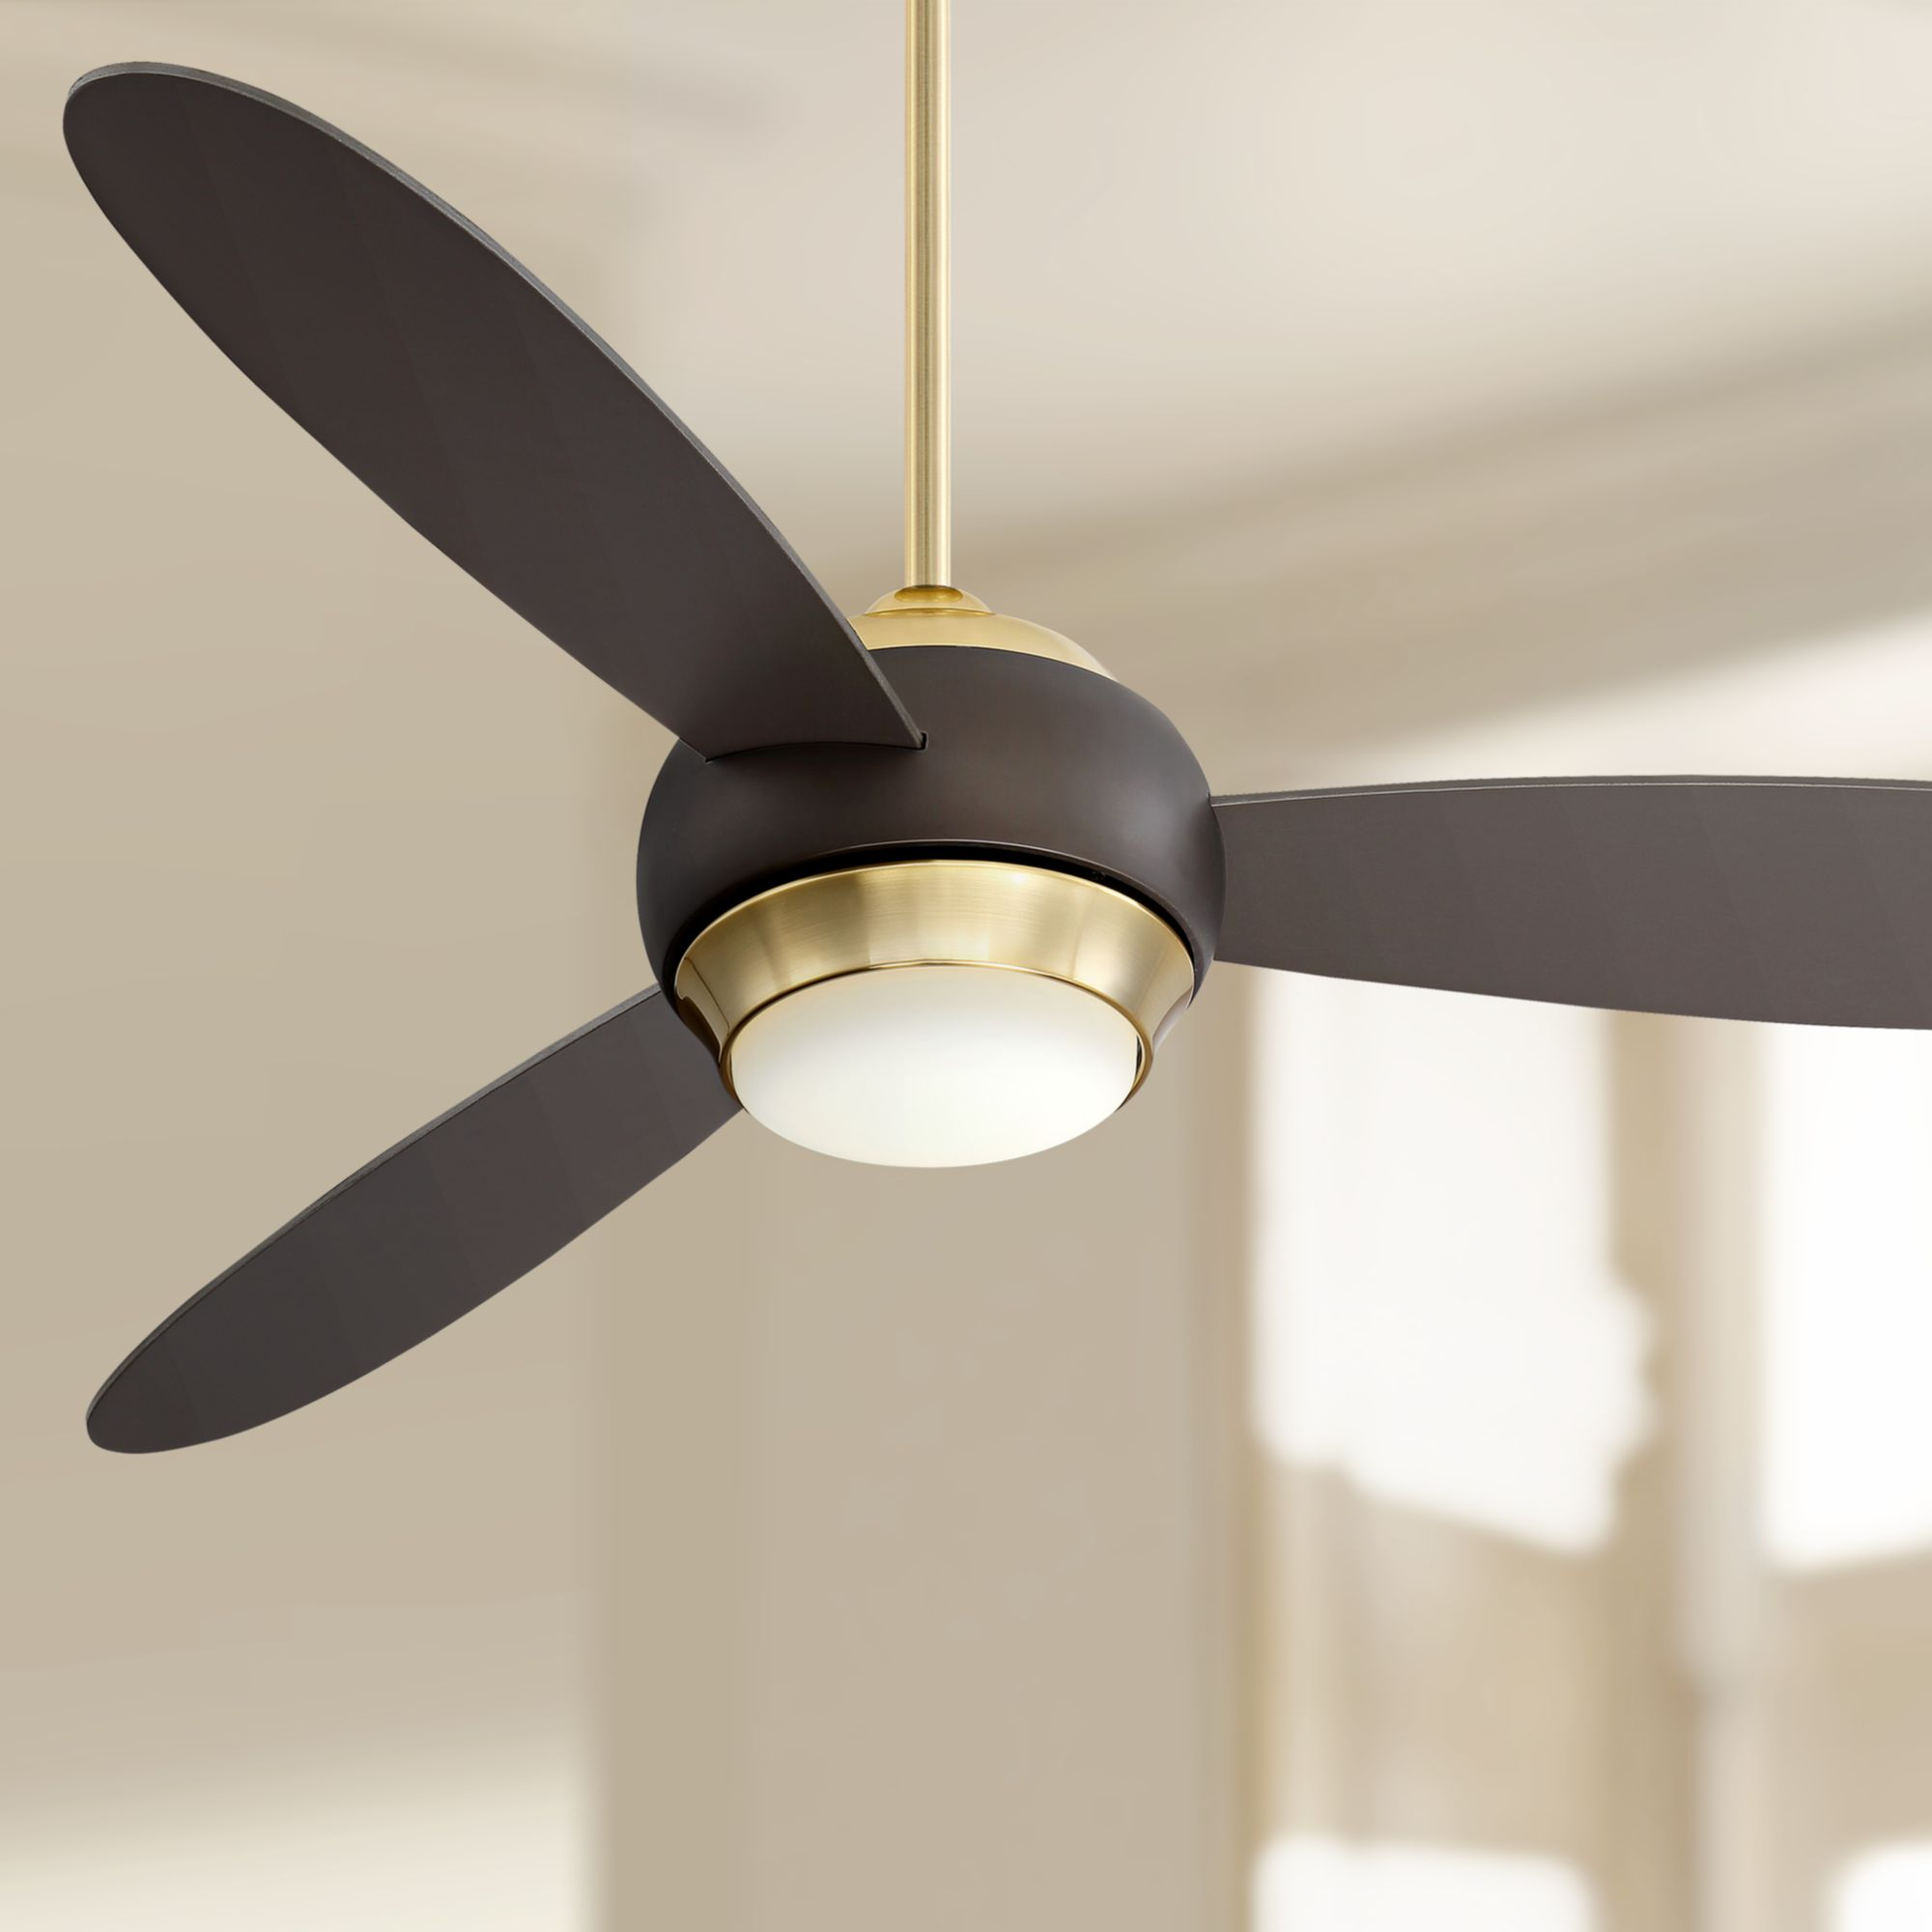 54 Casa Vieja Modern Ceiling Fan With Light Led Dimmable Bronze And Soft Brass For Living Room Kitchen Bedroom Dining Walmart Com Walmart Com